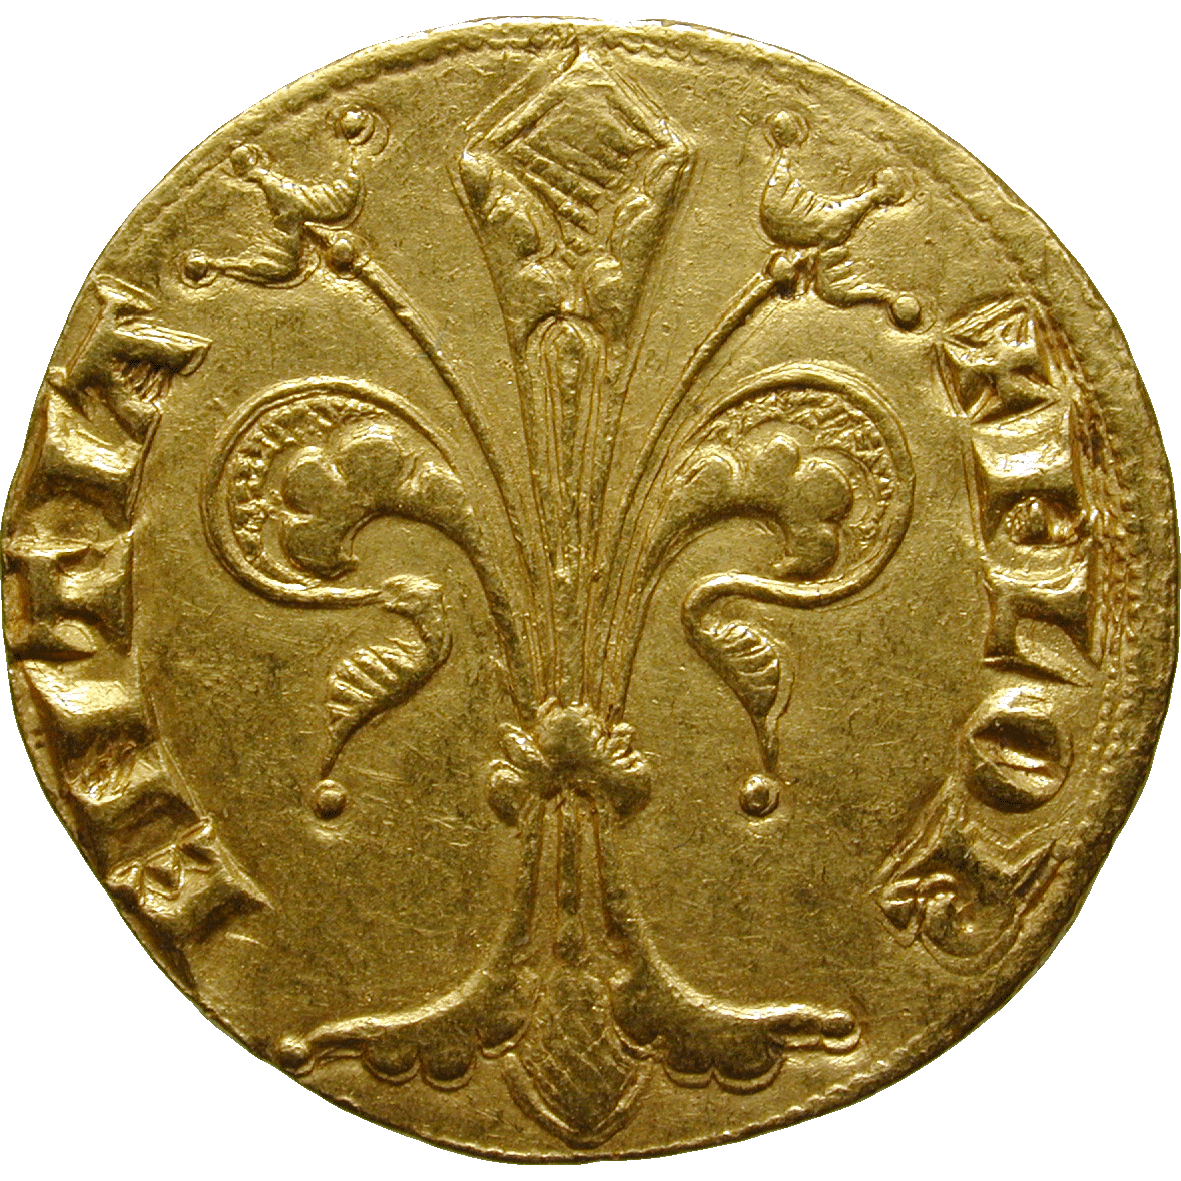 Holy Roman Empire, Republic of Florence, Fiorino d'Oro (obverse)